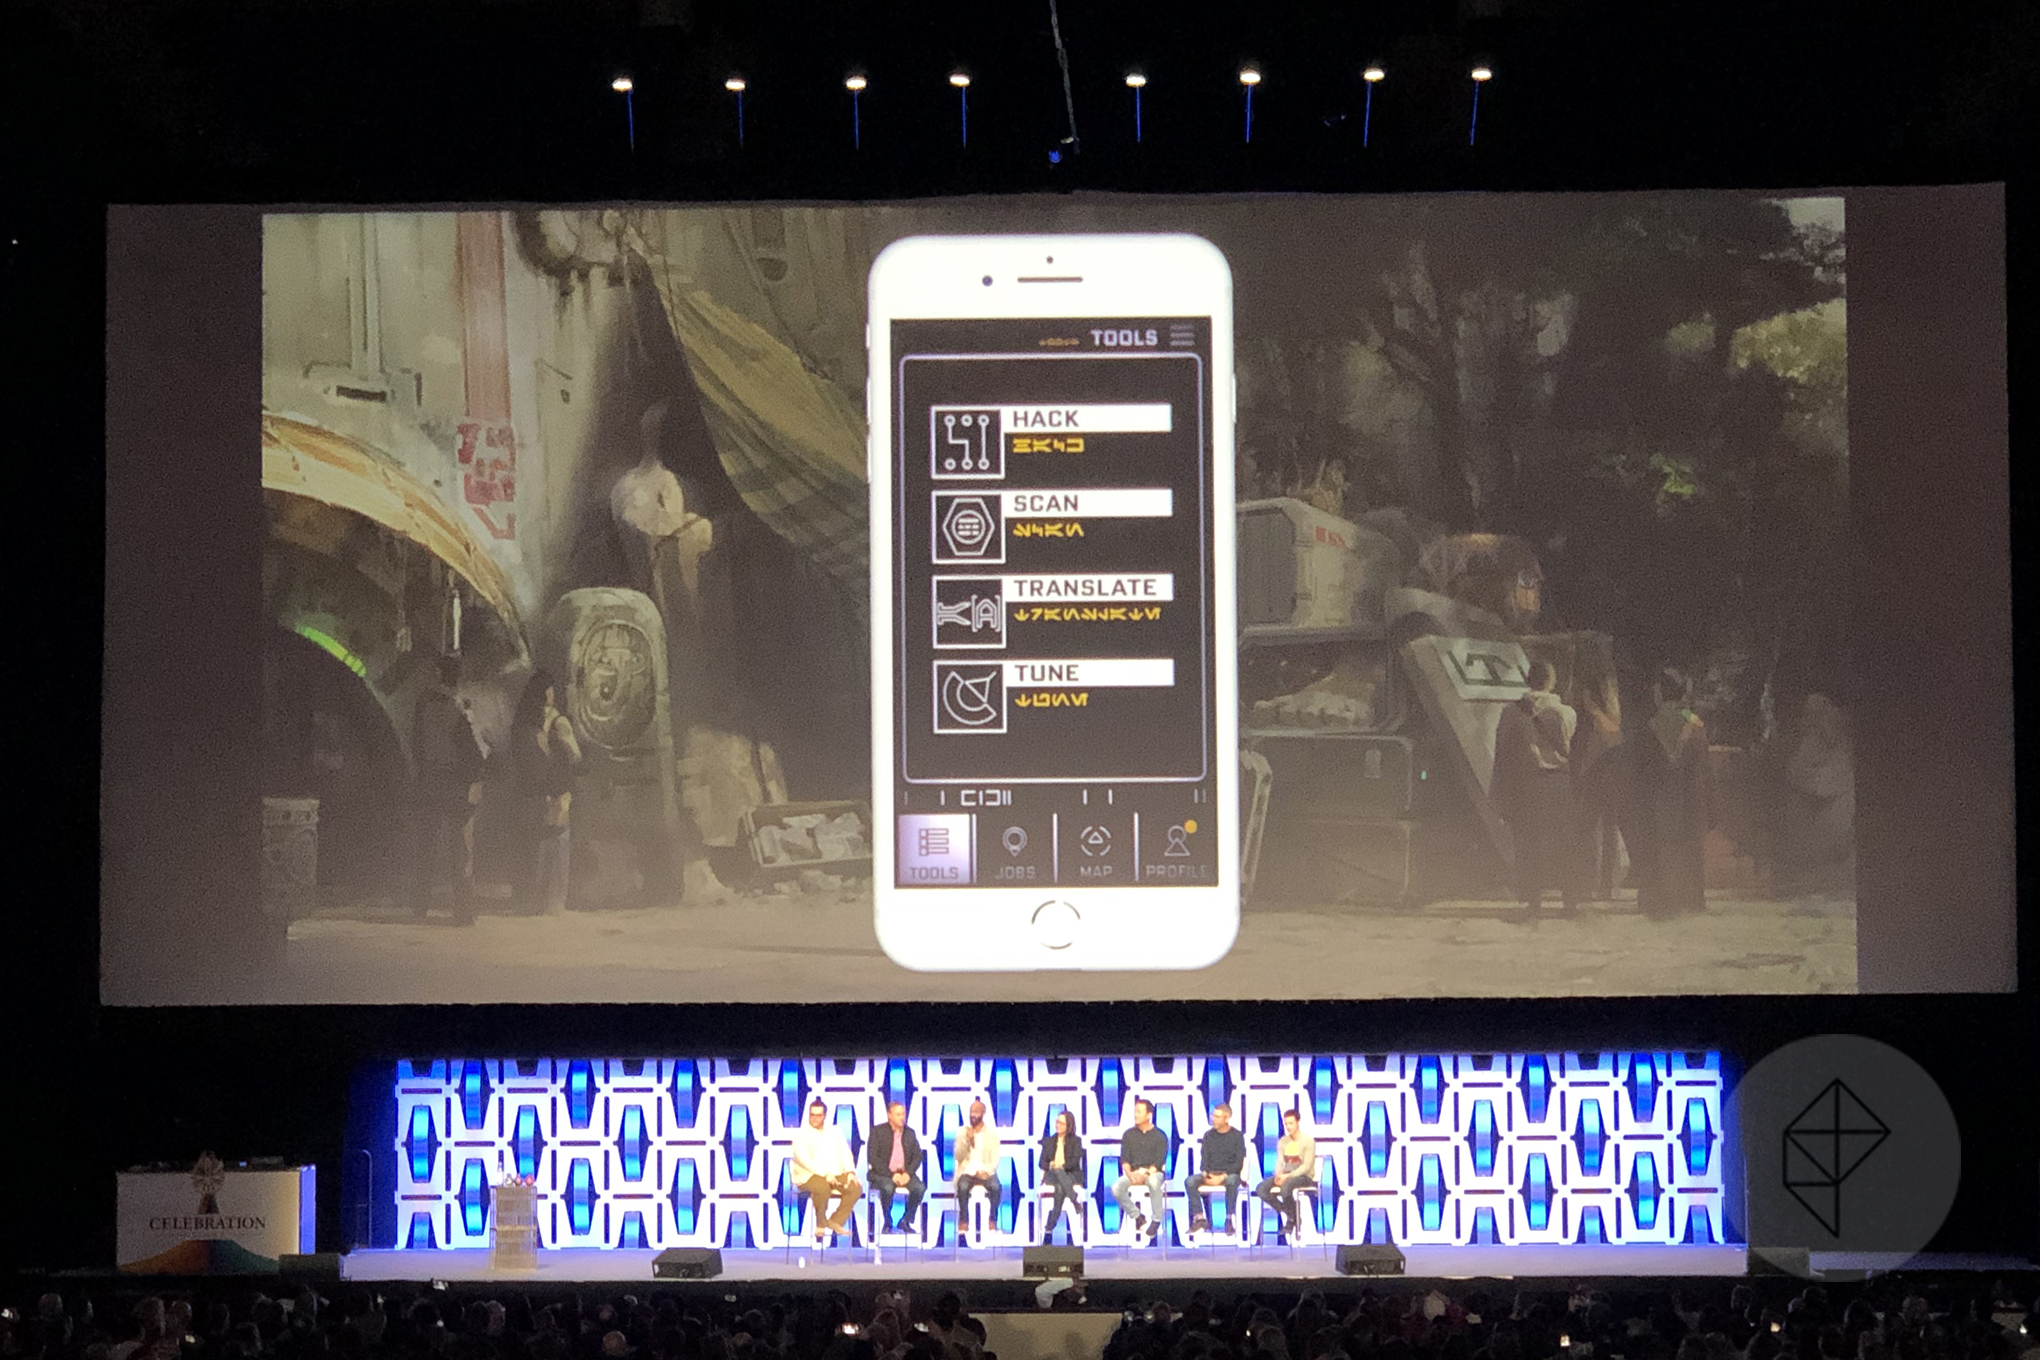 Disney's Star Wars Land will be one big multiplayer game